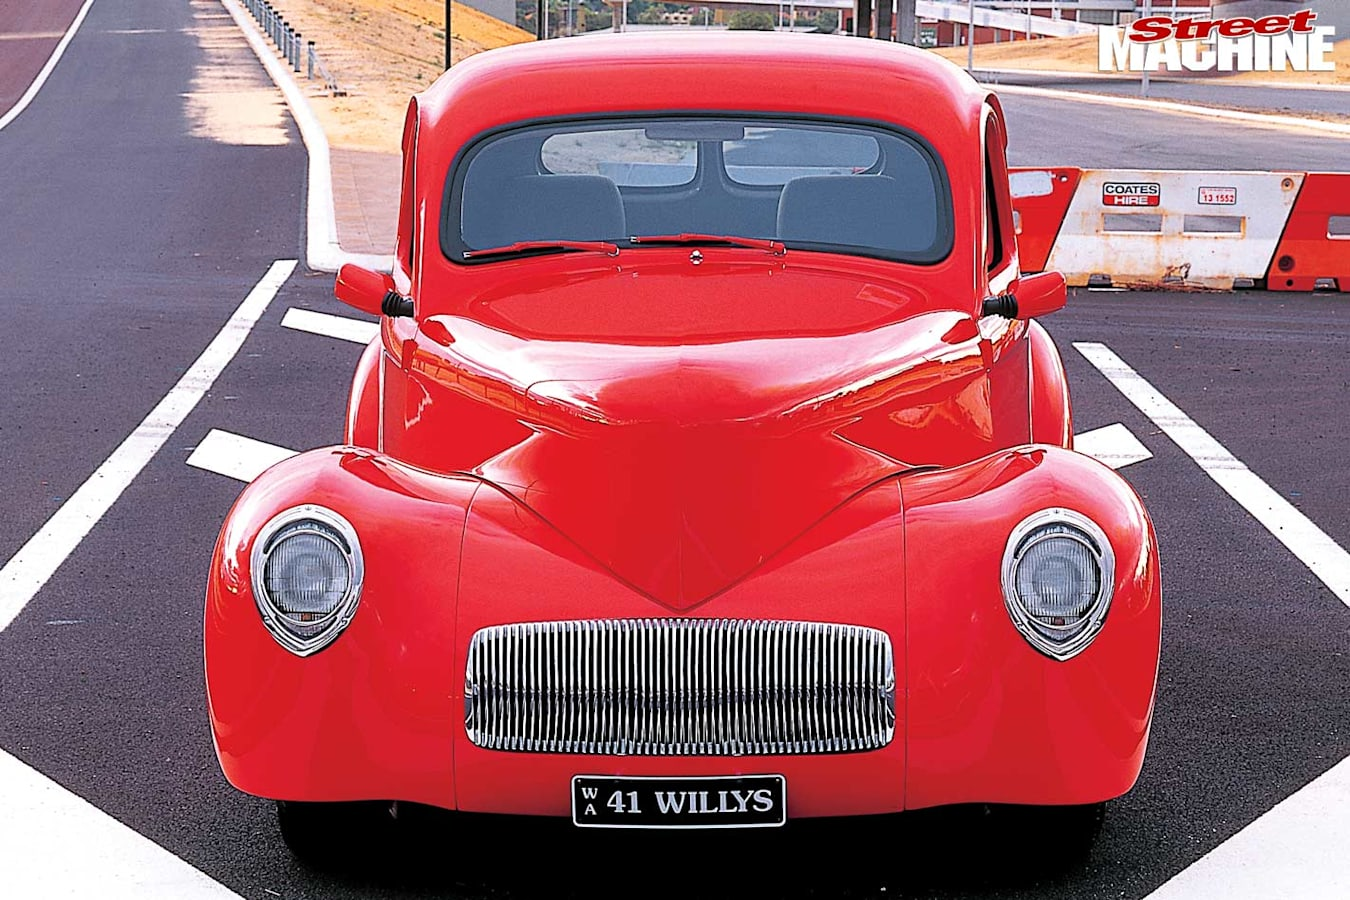 Willys coupe front